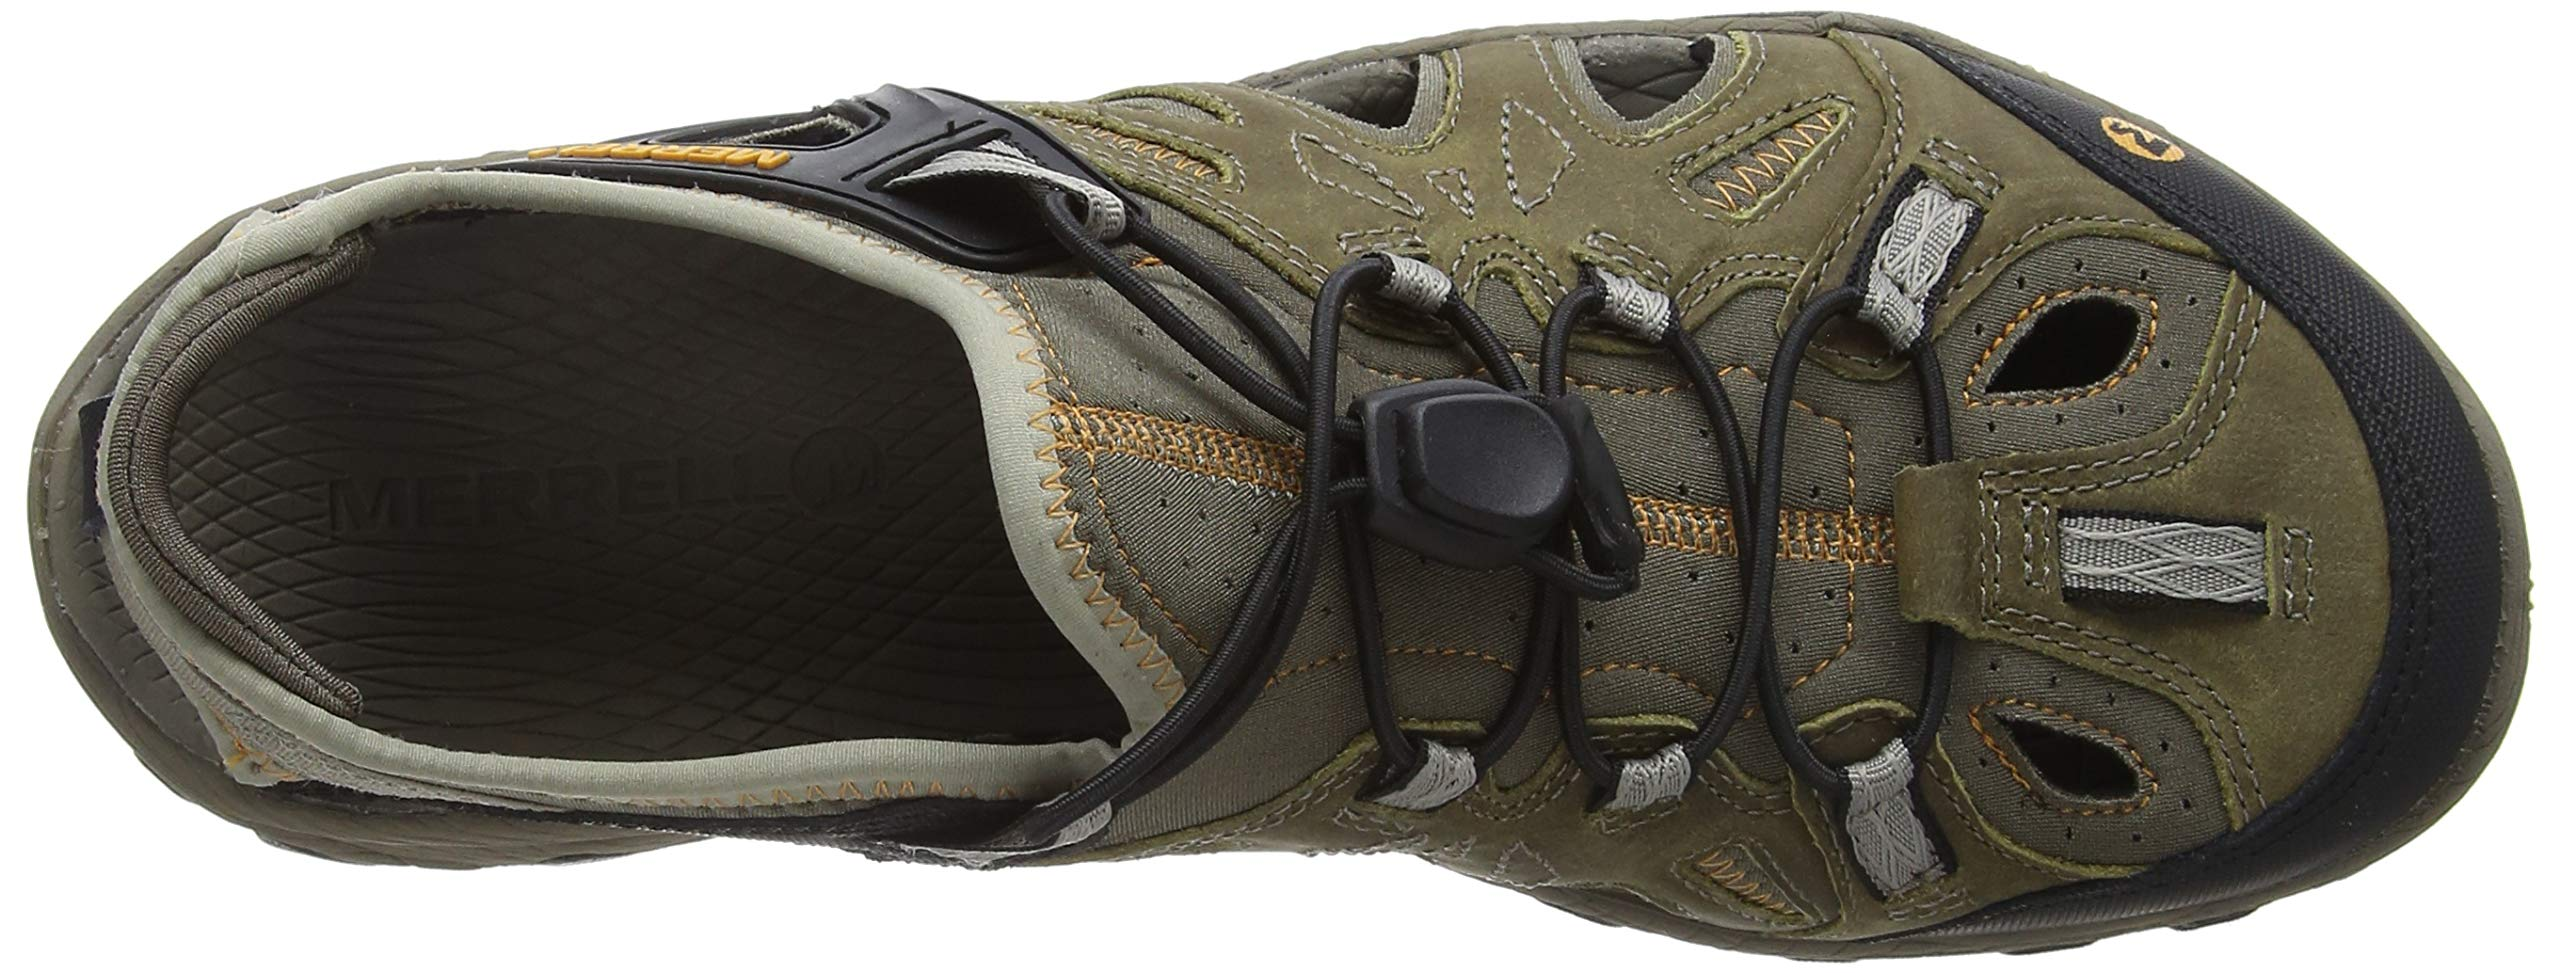 Merrell Men's Blaze Sieve Water Shoes